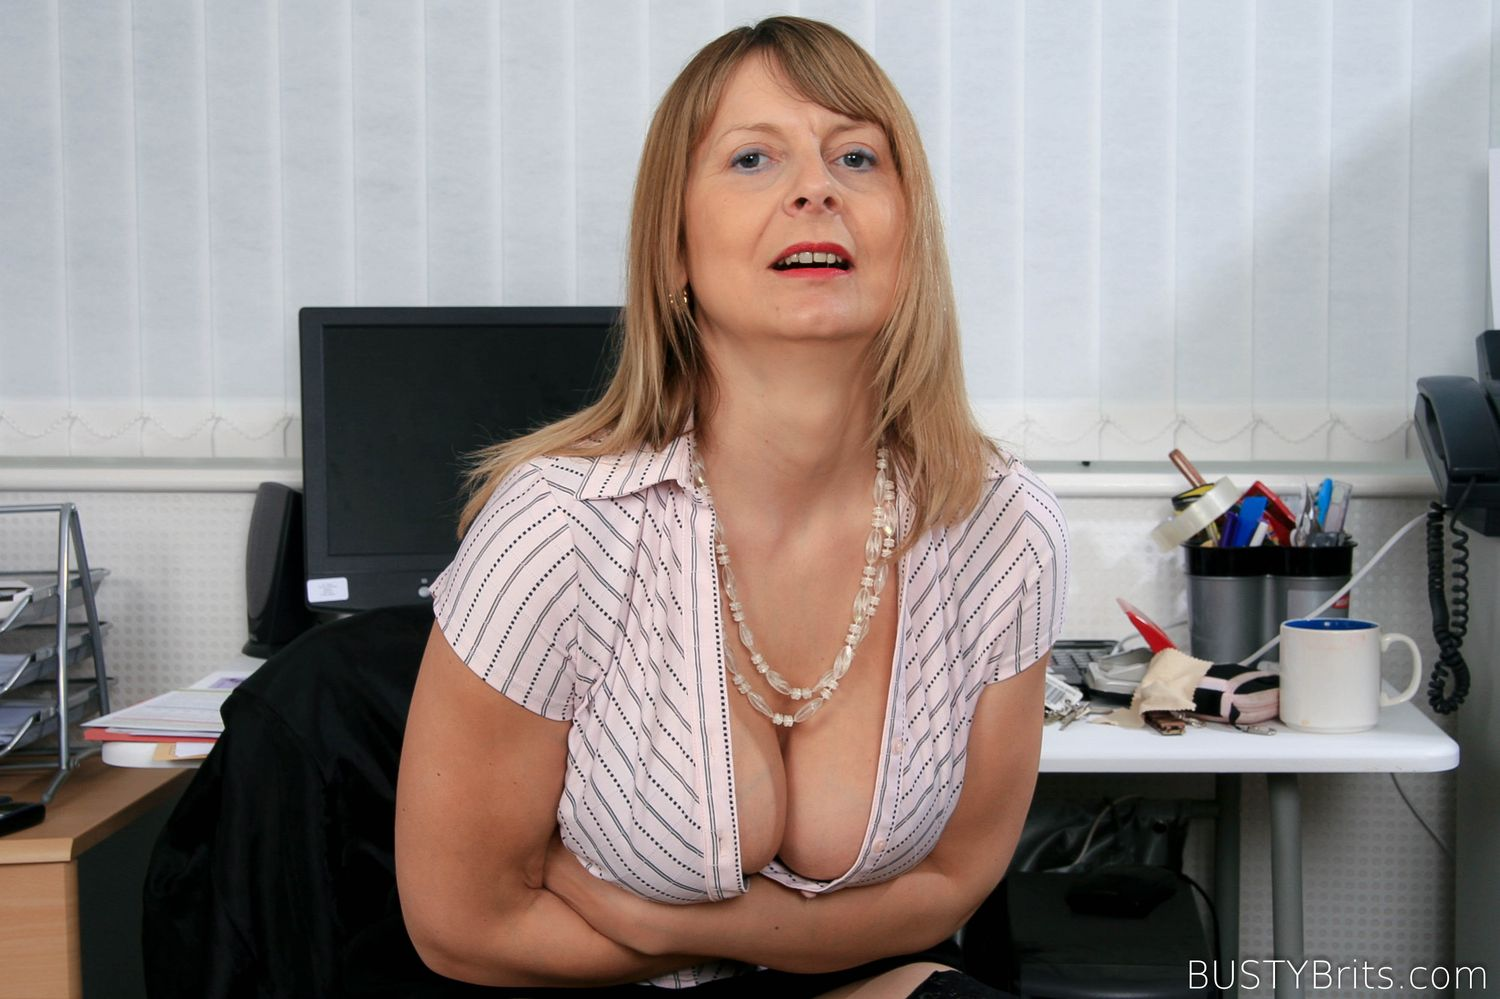 BUSTYBRITS Fiona Aspen Clerical 155 photos May 31, 2017  Siterip Imageset